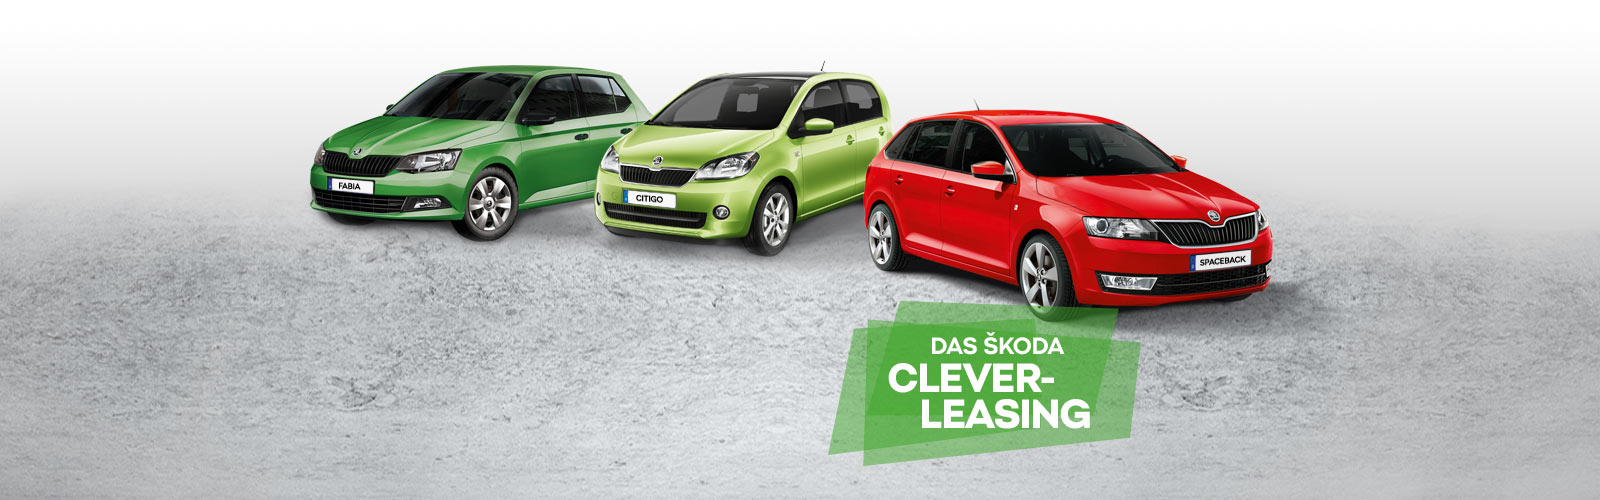 cleverleasing Skodamueller Background